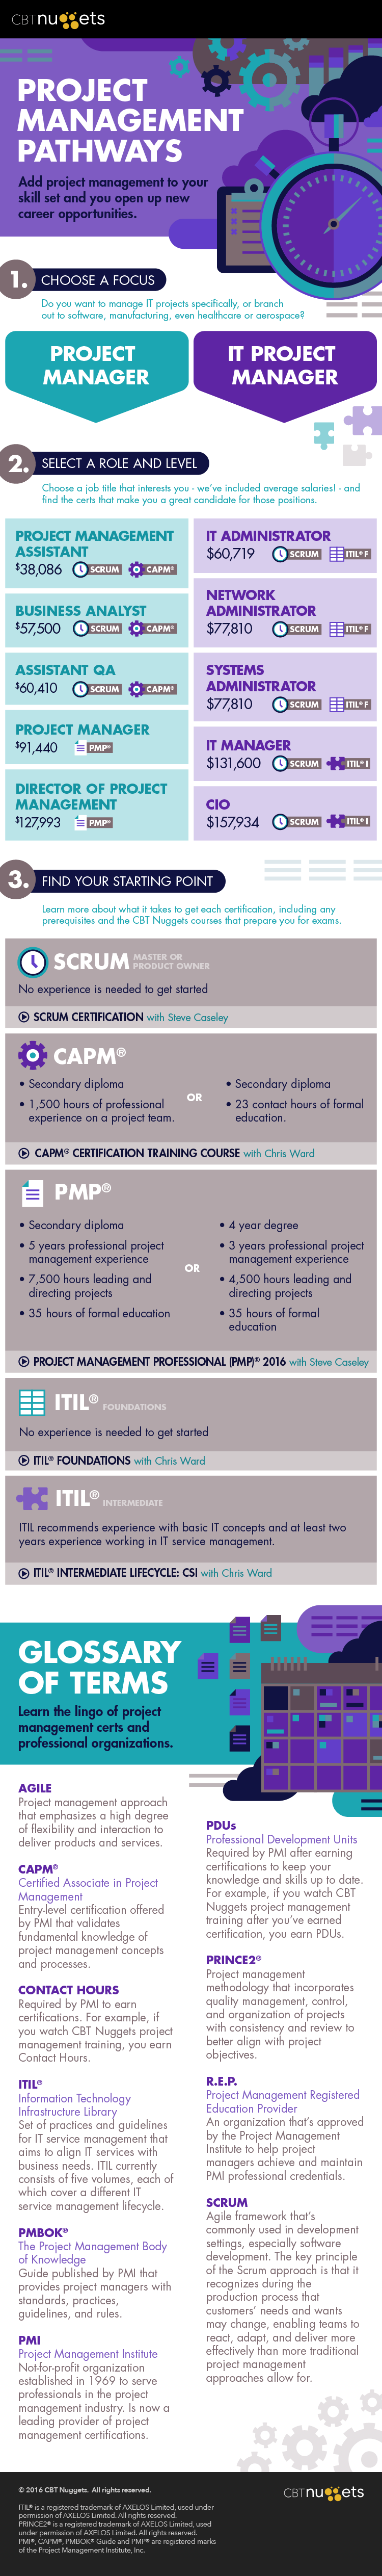 project-management-infographic (1)